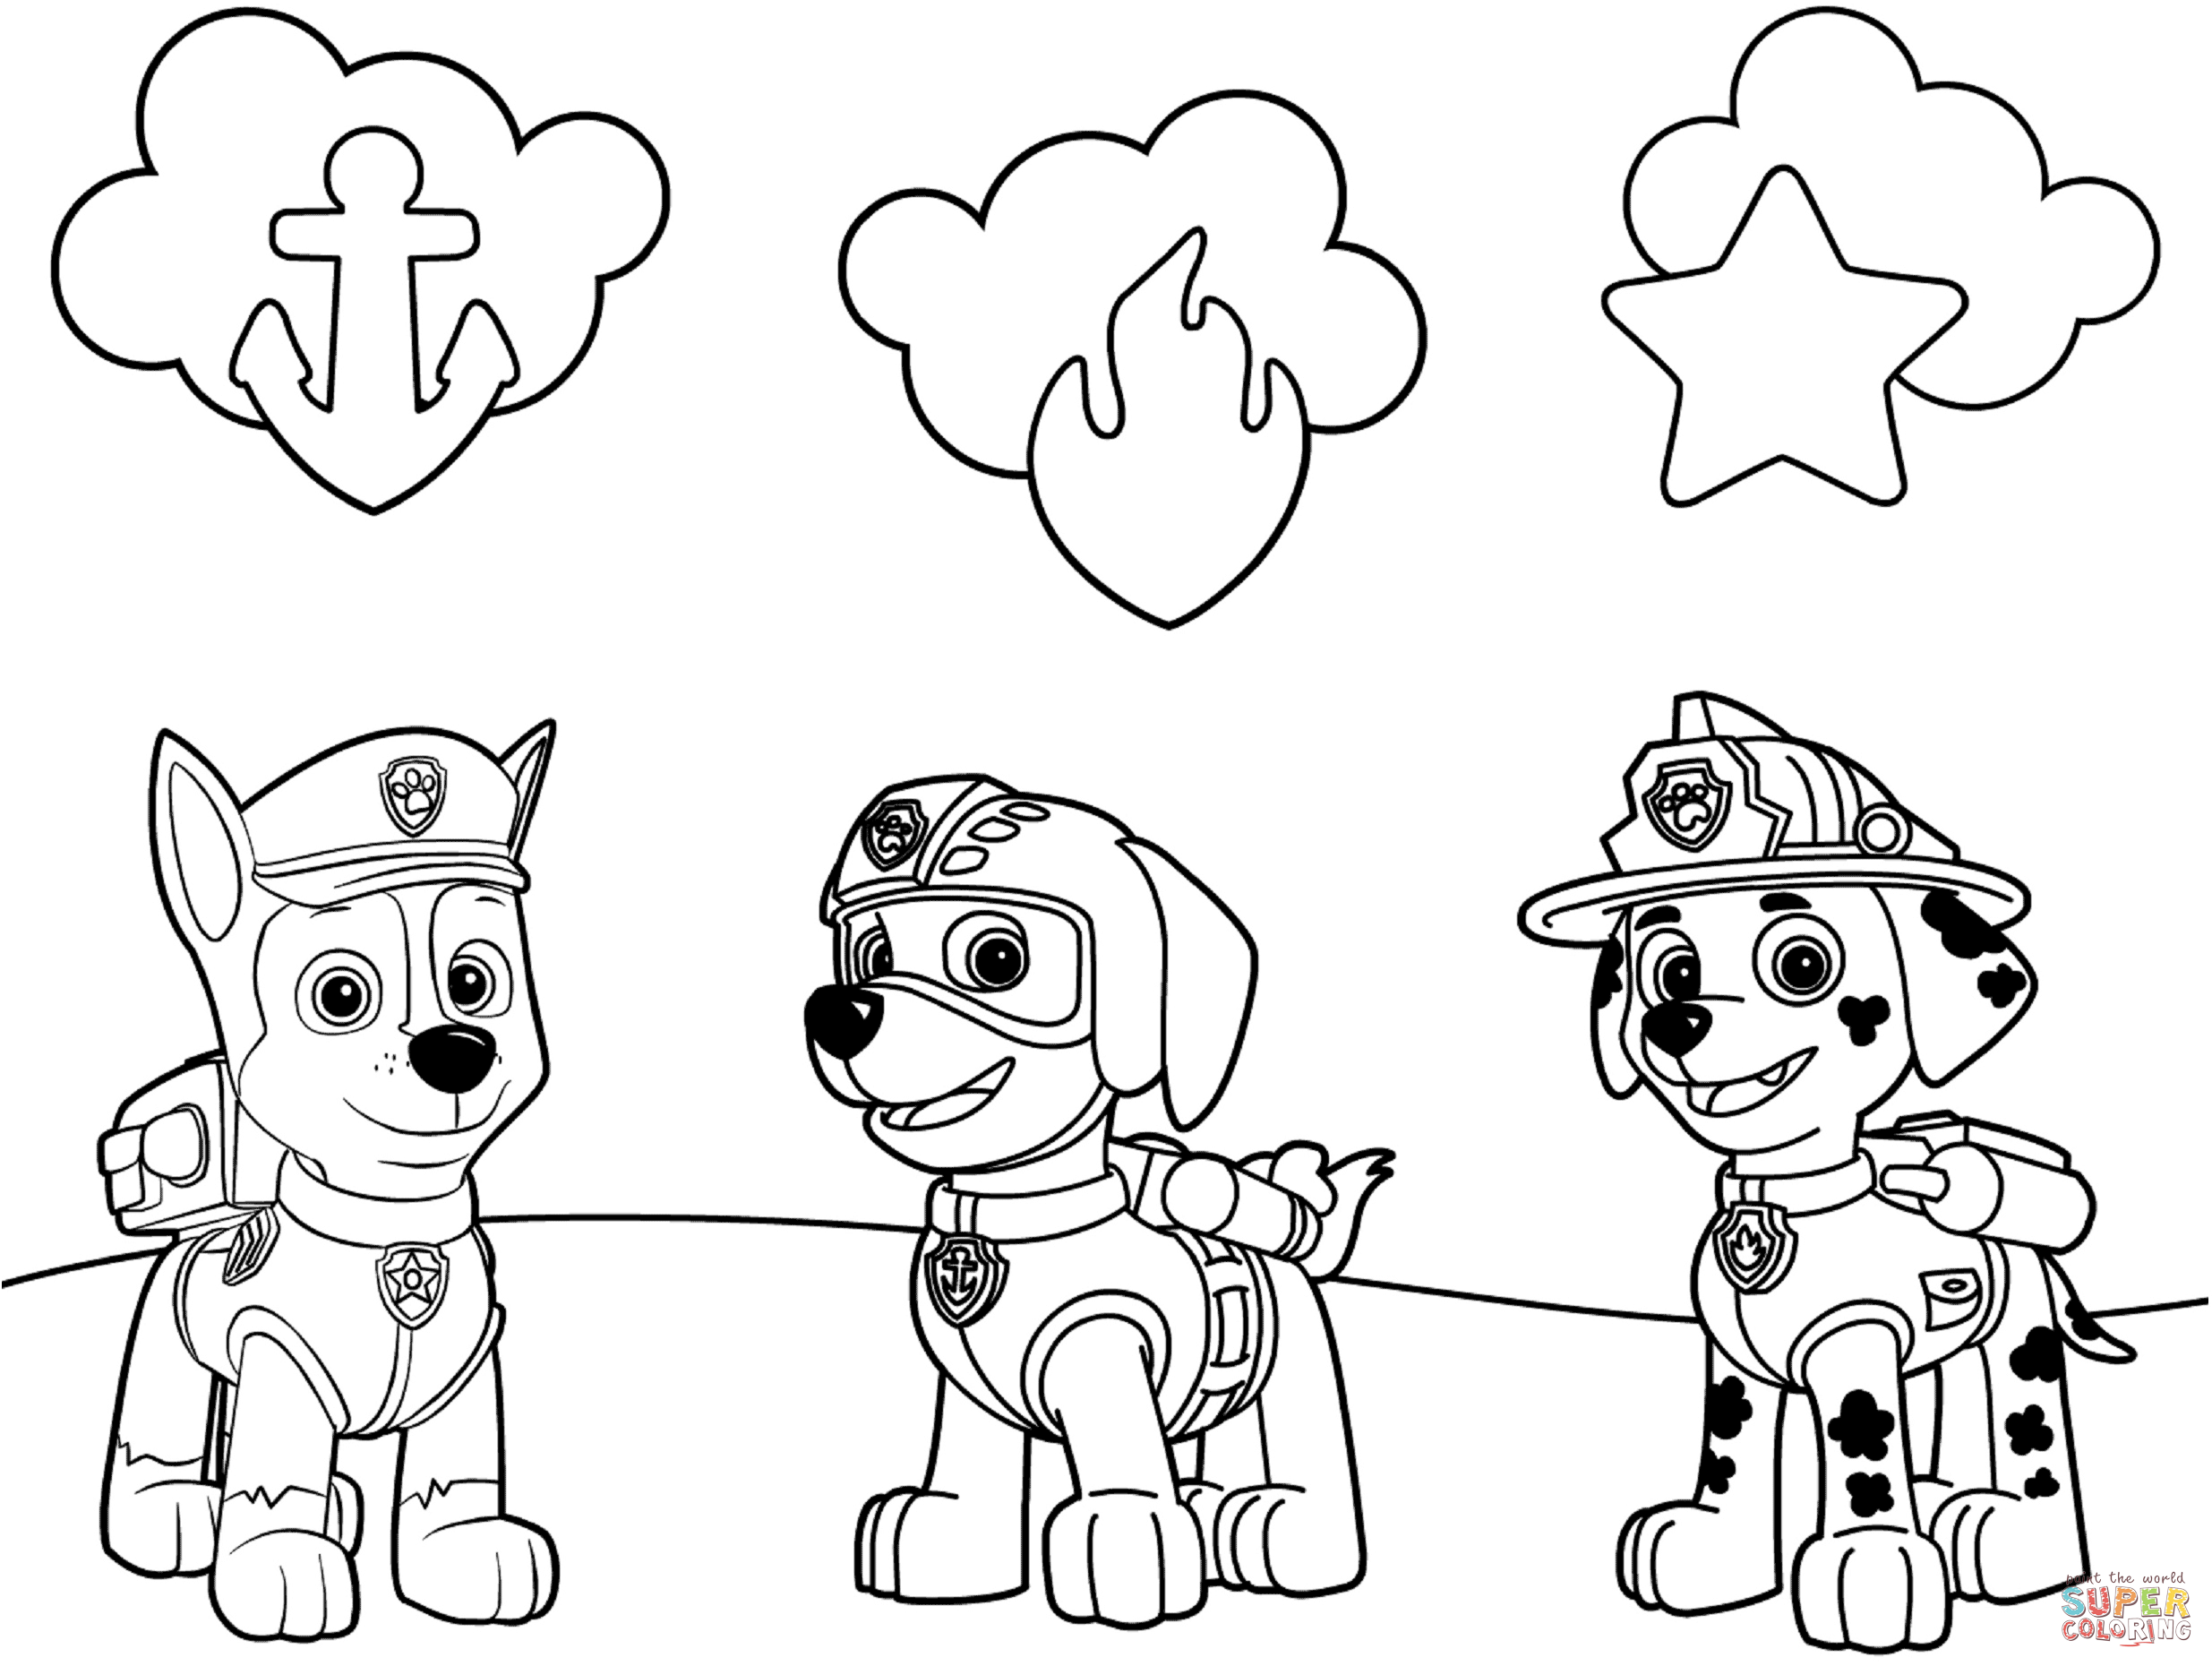 PAW Patrol Badge Coloring Pages Printable 26